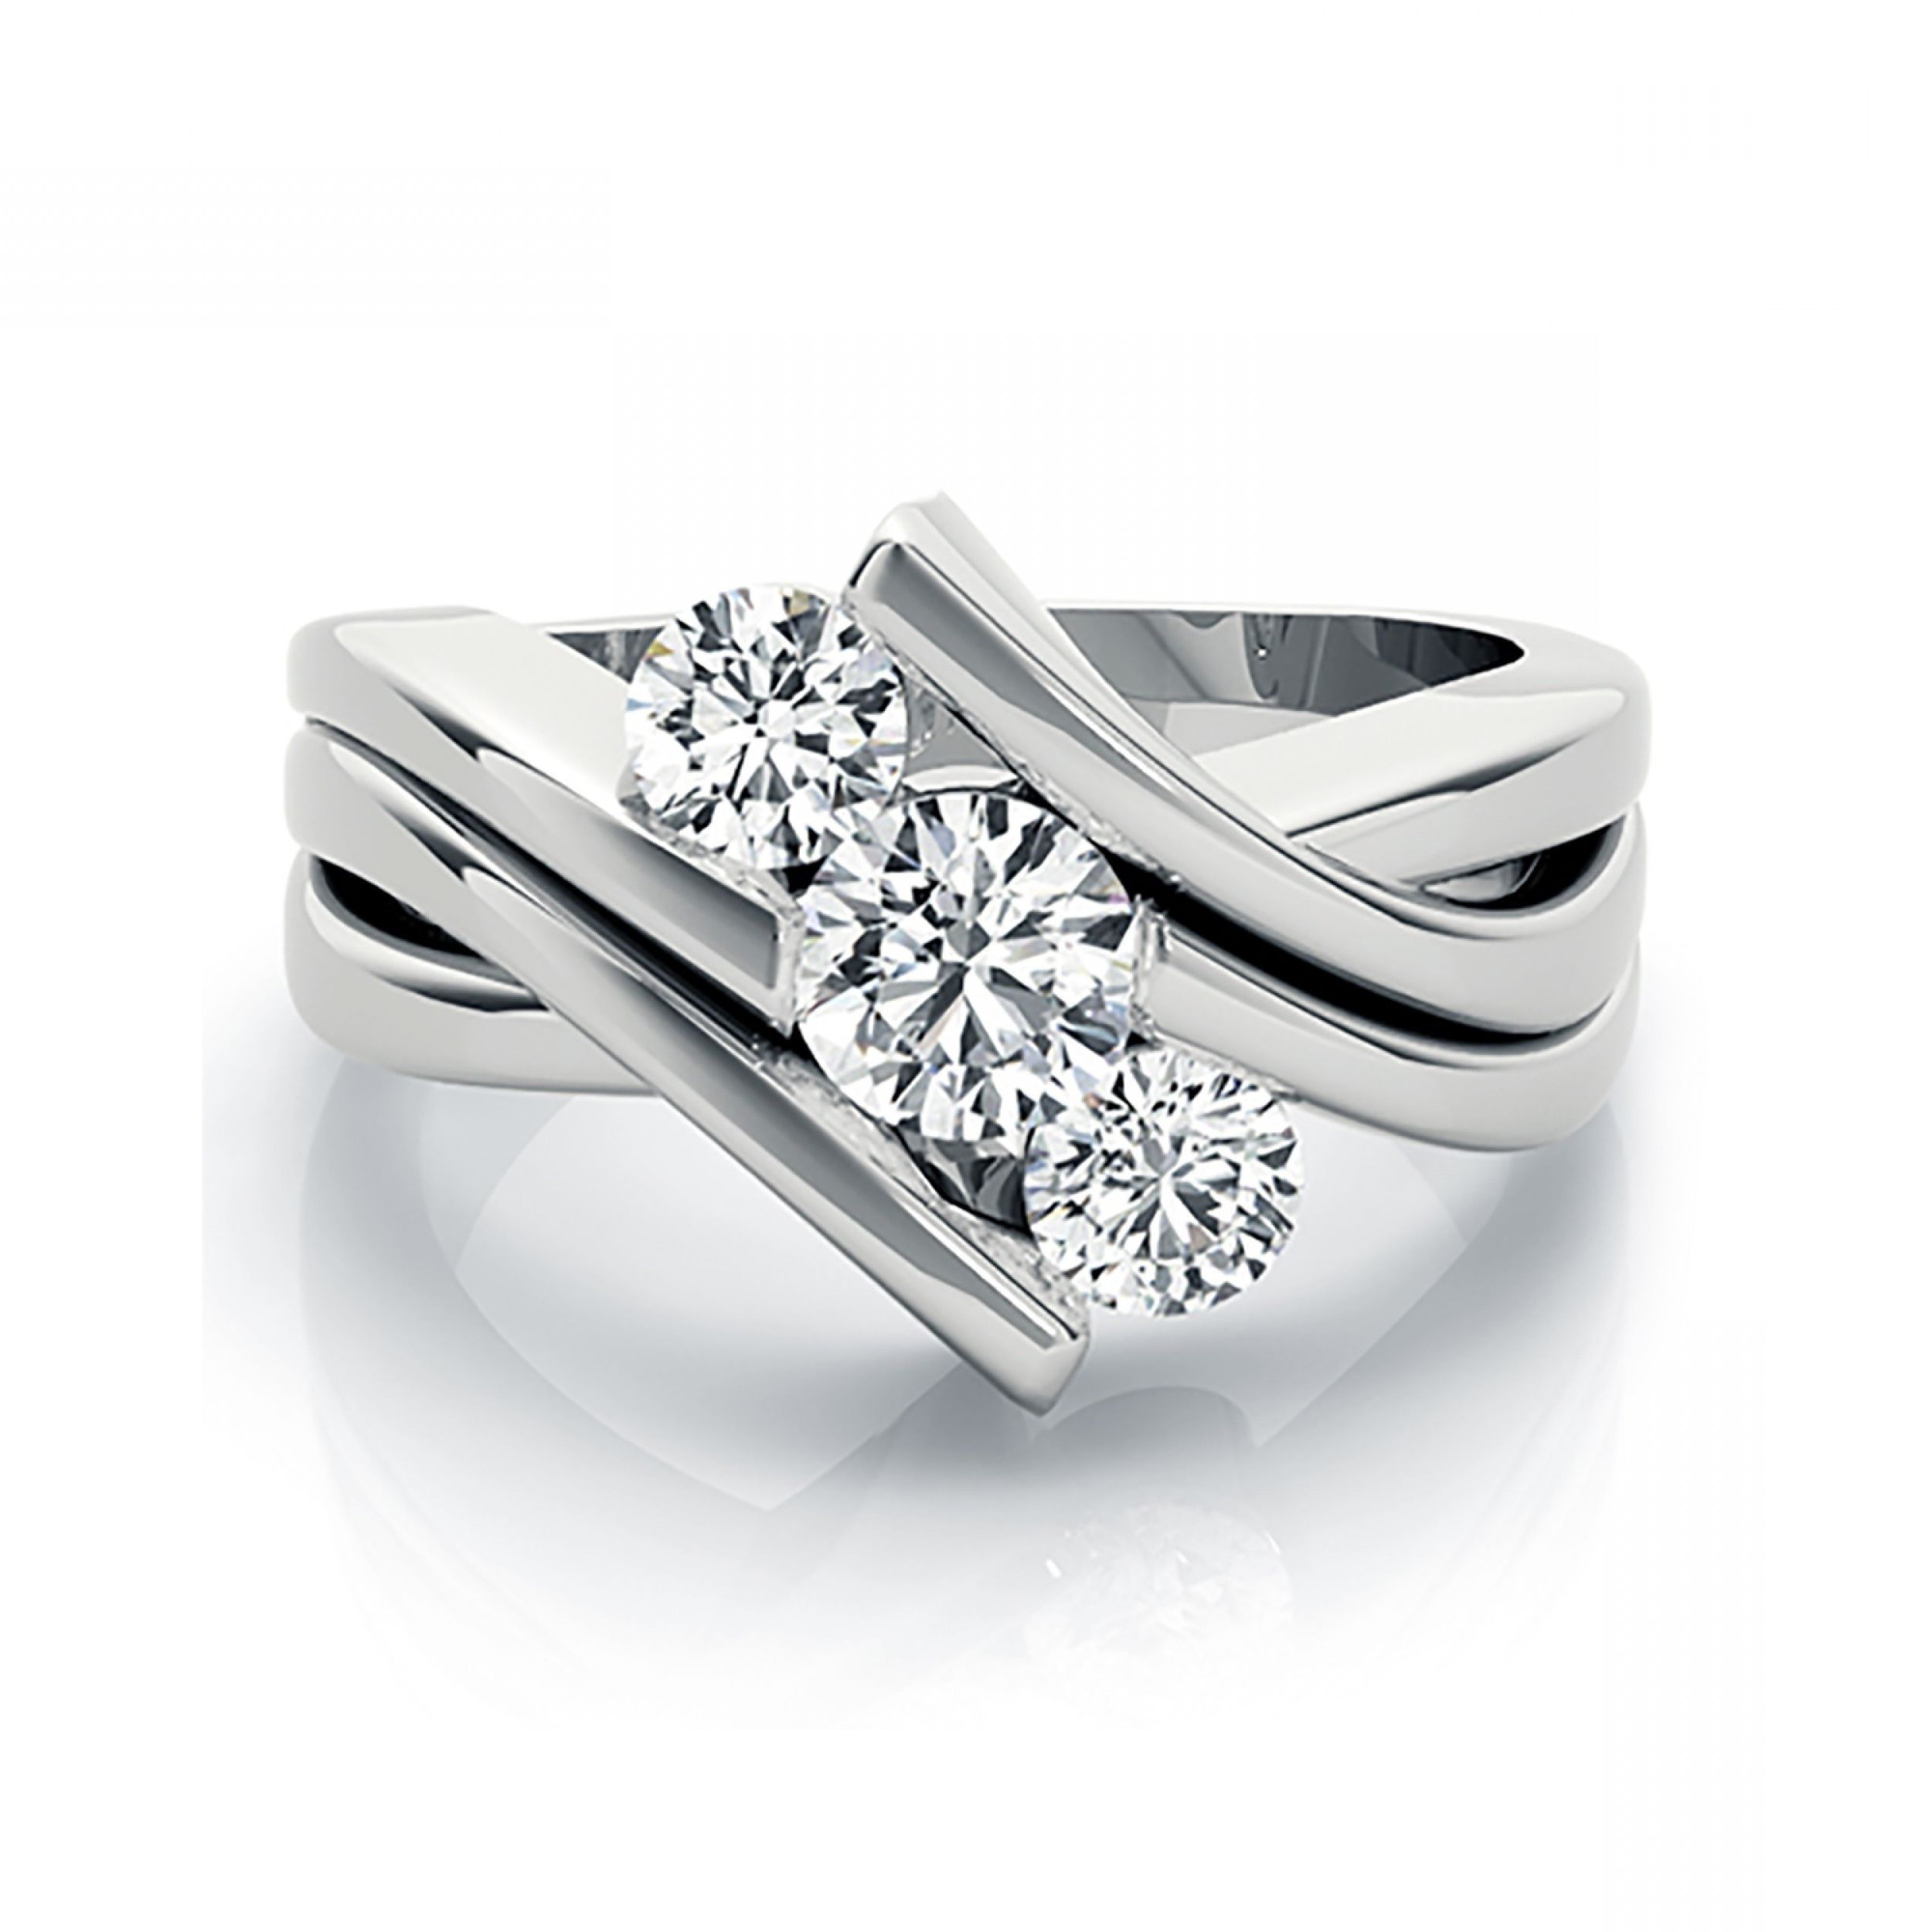 diamonds ring world com old diamond rings of alternative weddings awesome round beautiful jewellery settings